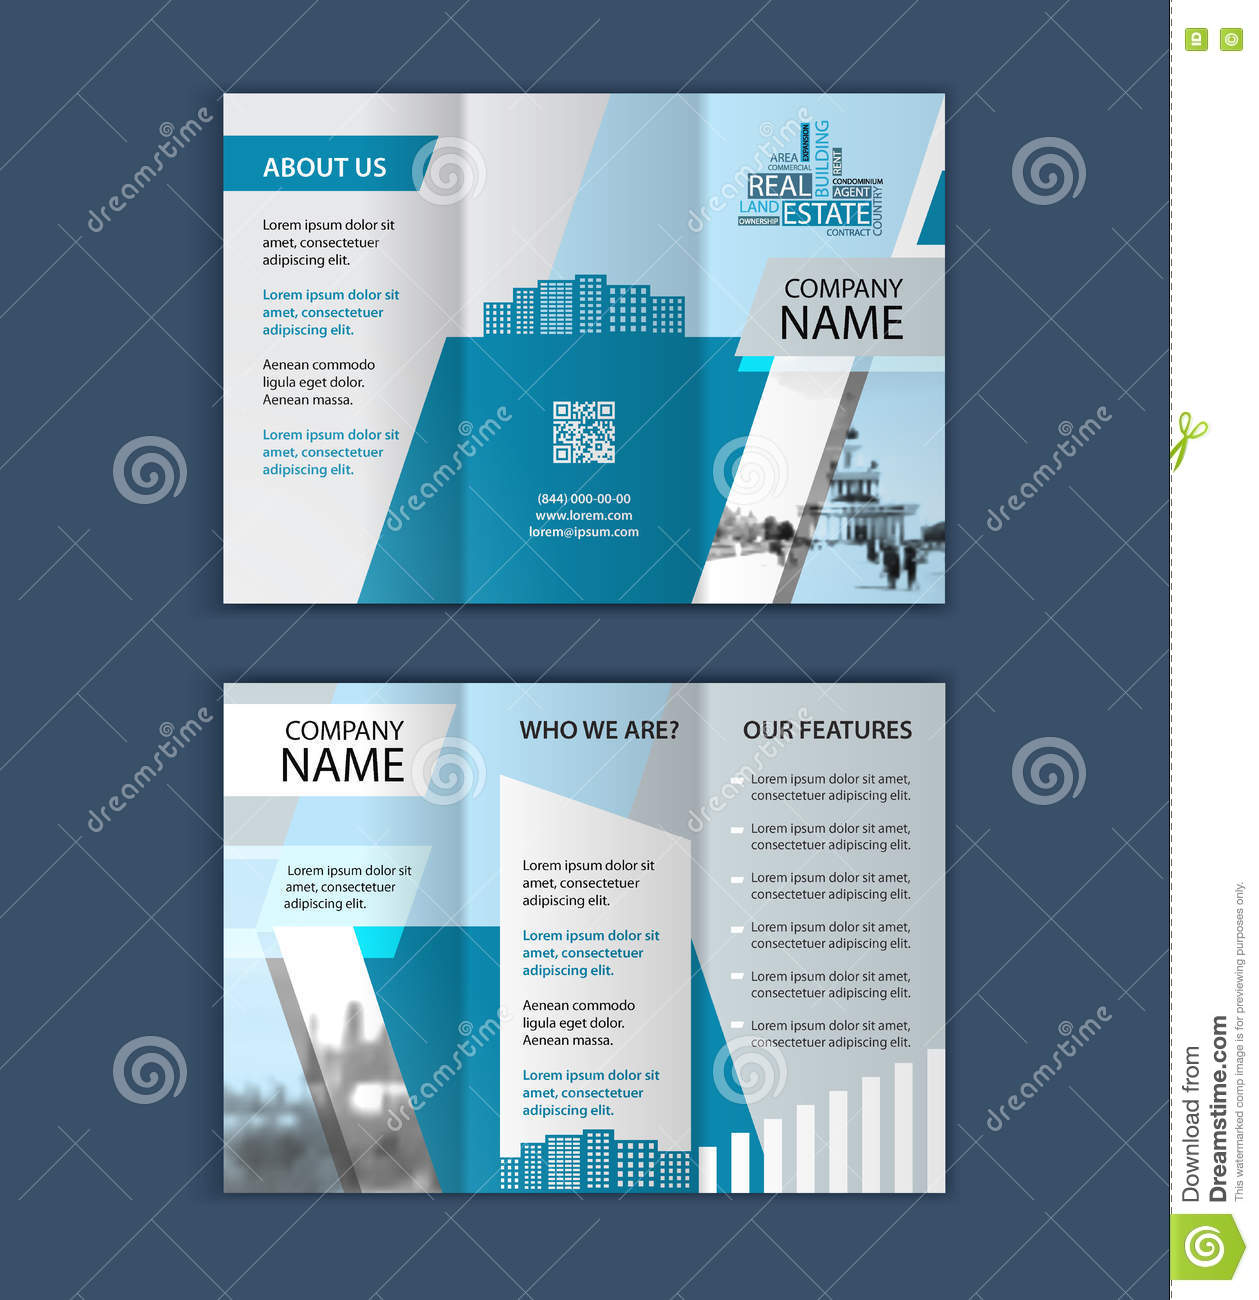 concept of architecture design photo frame trifold brochure concept of architecture design photo frame trifold brochure template for real estate company